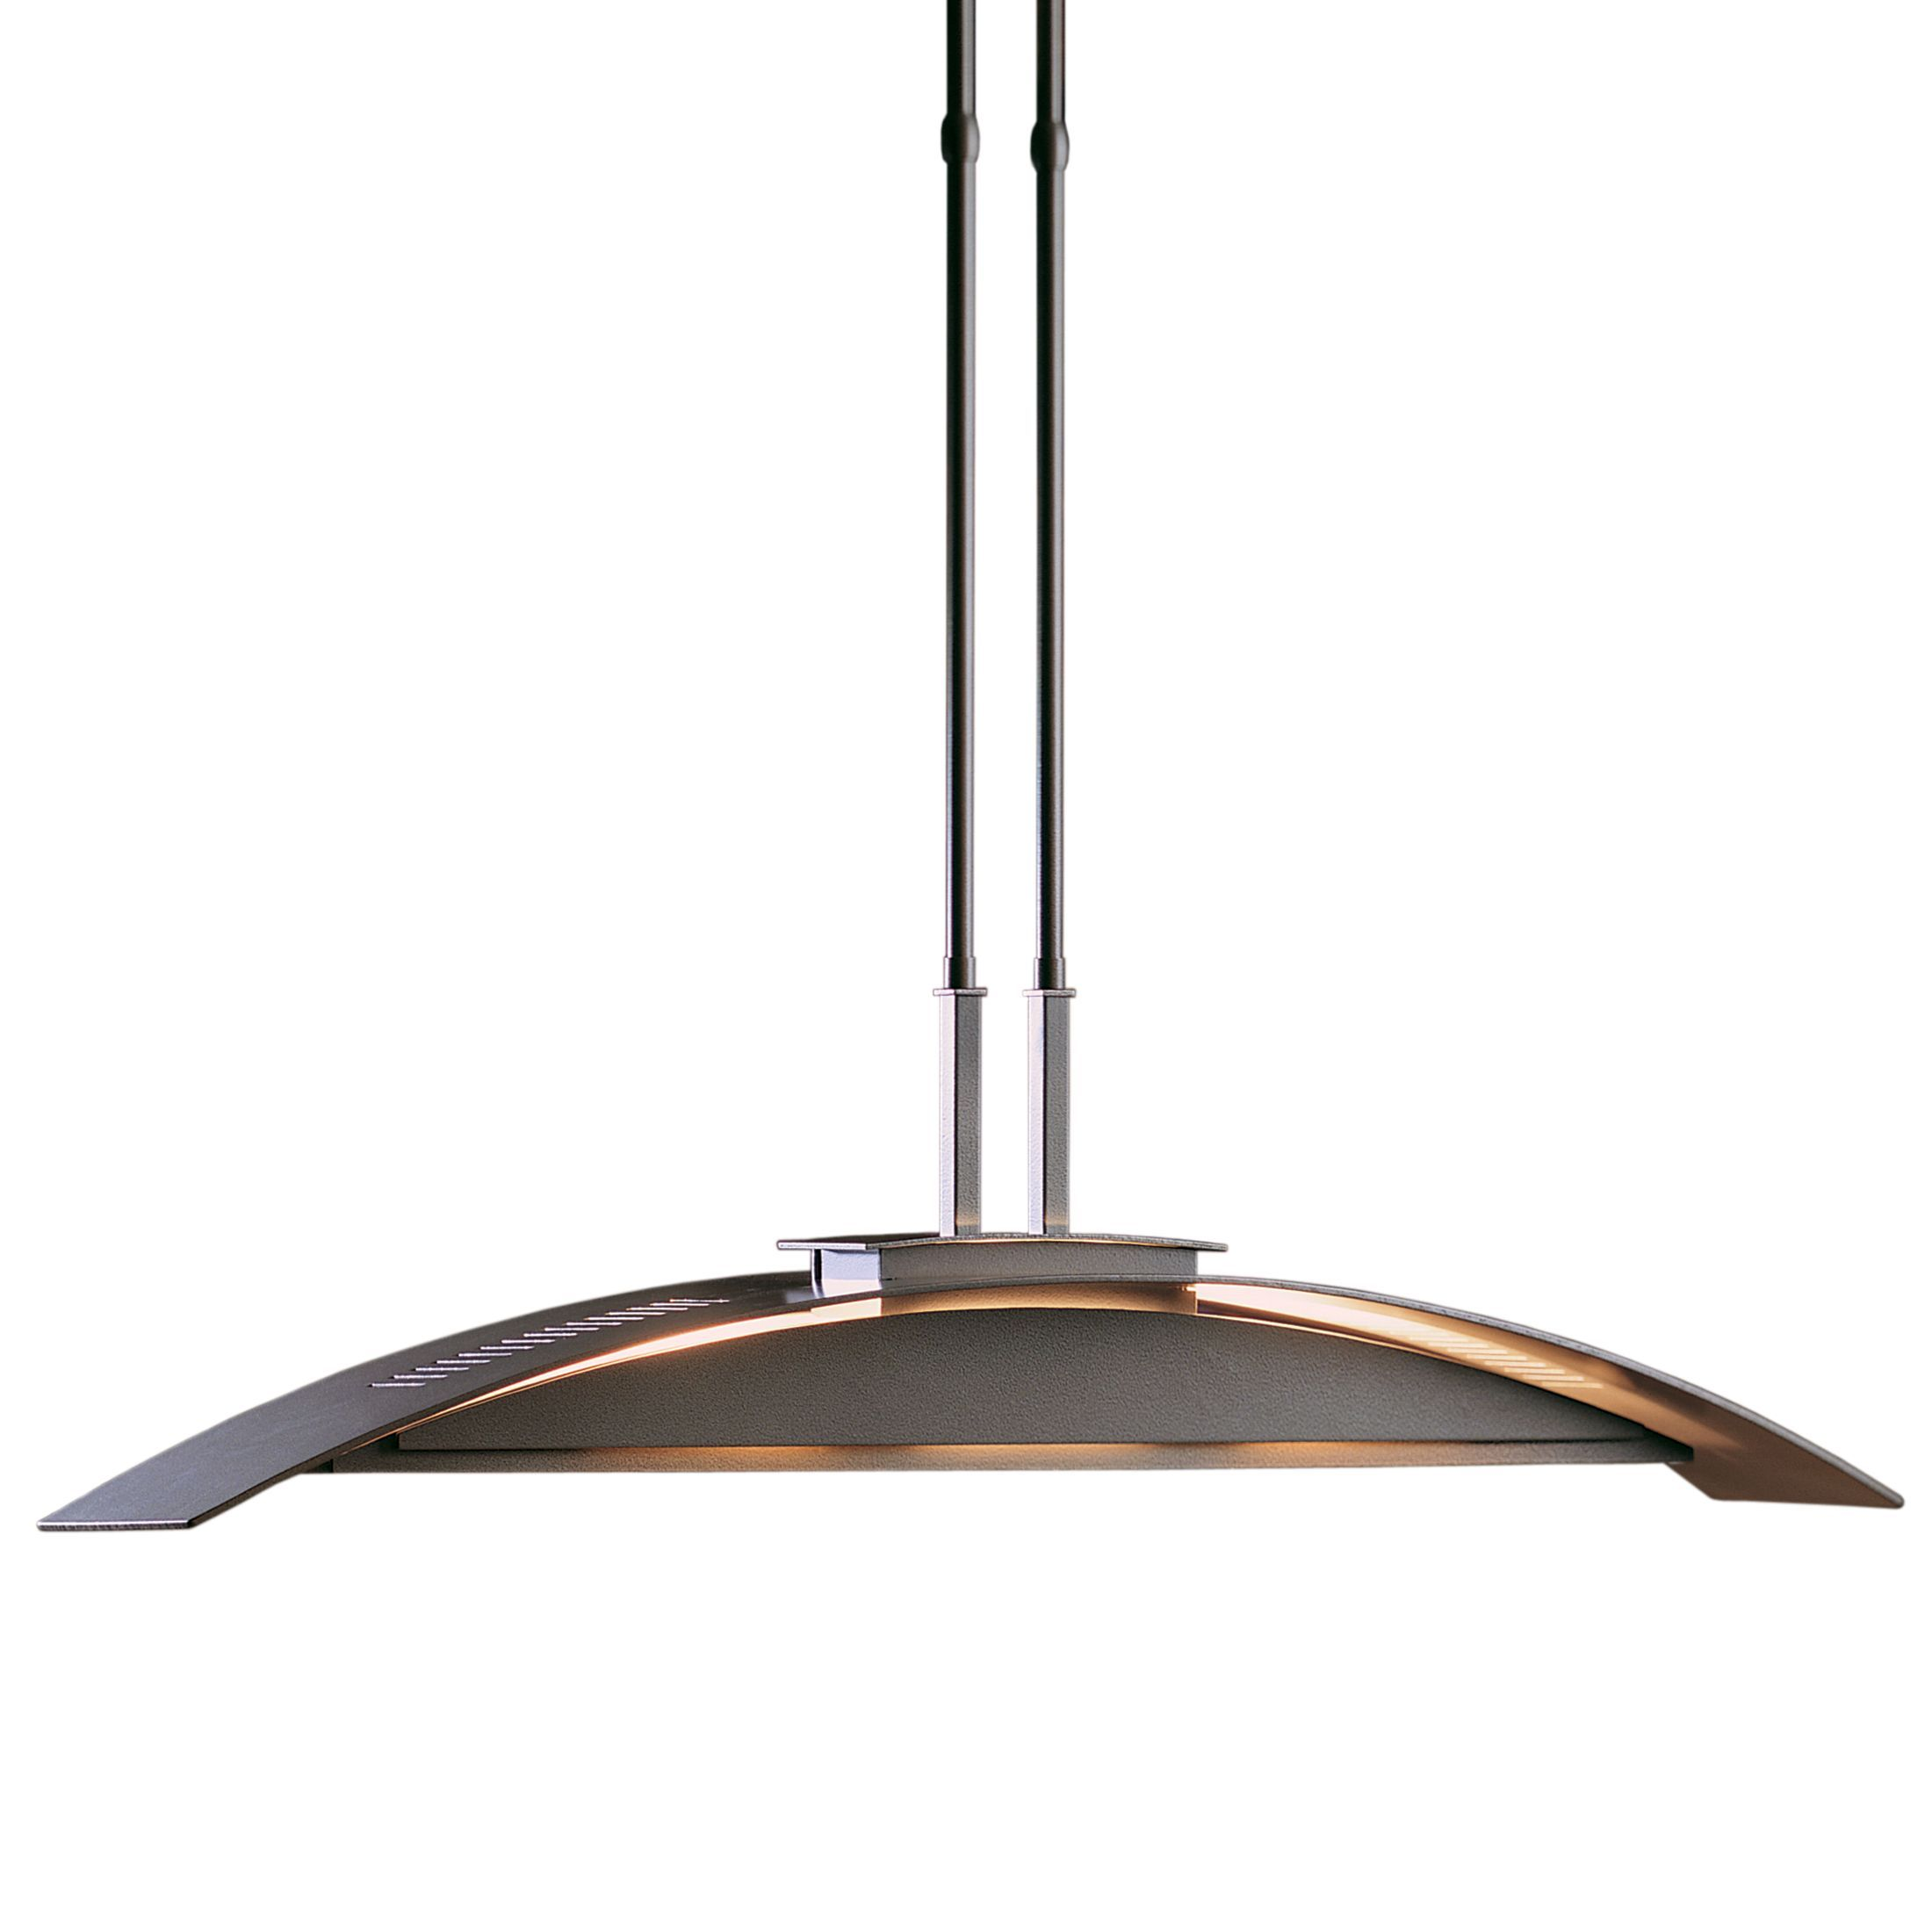 Bent plane pendant hubbardton forge project todd tawnya kiss bent plane pendant hubbardton forge aloadofball Gallery